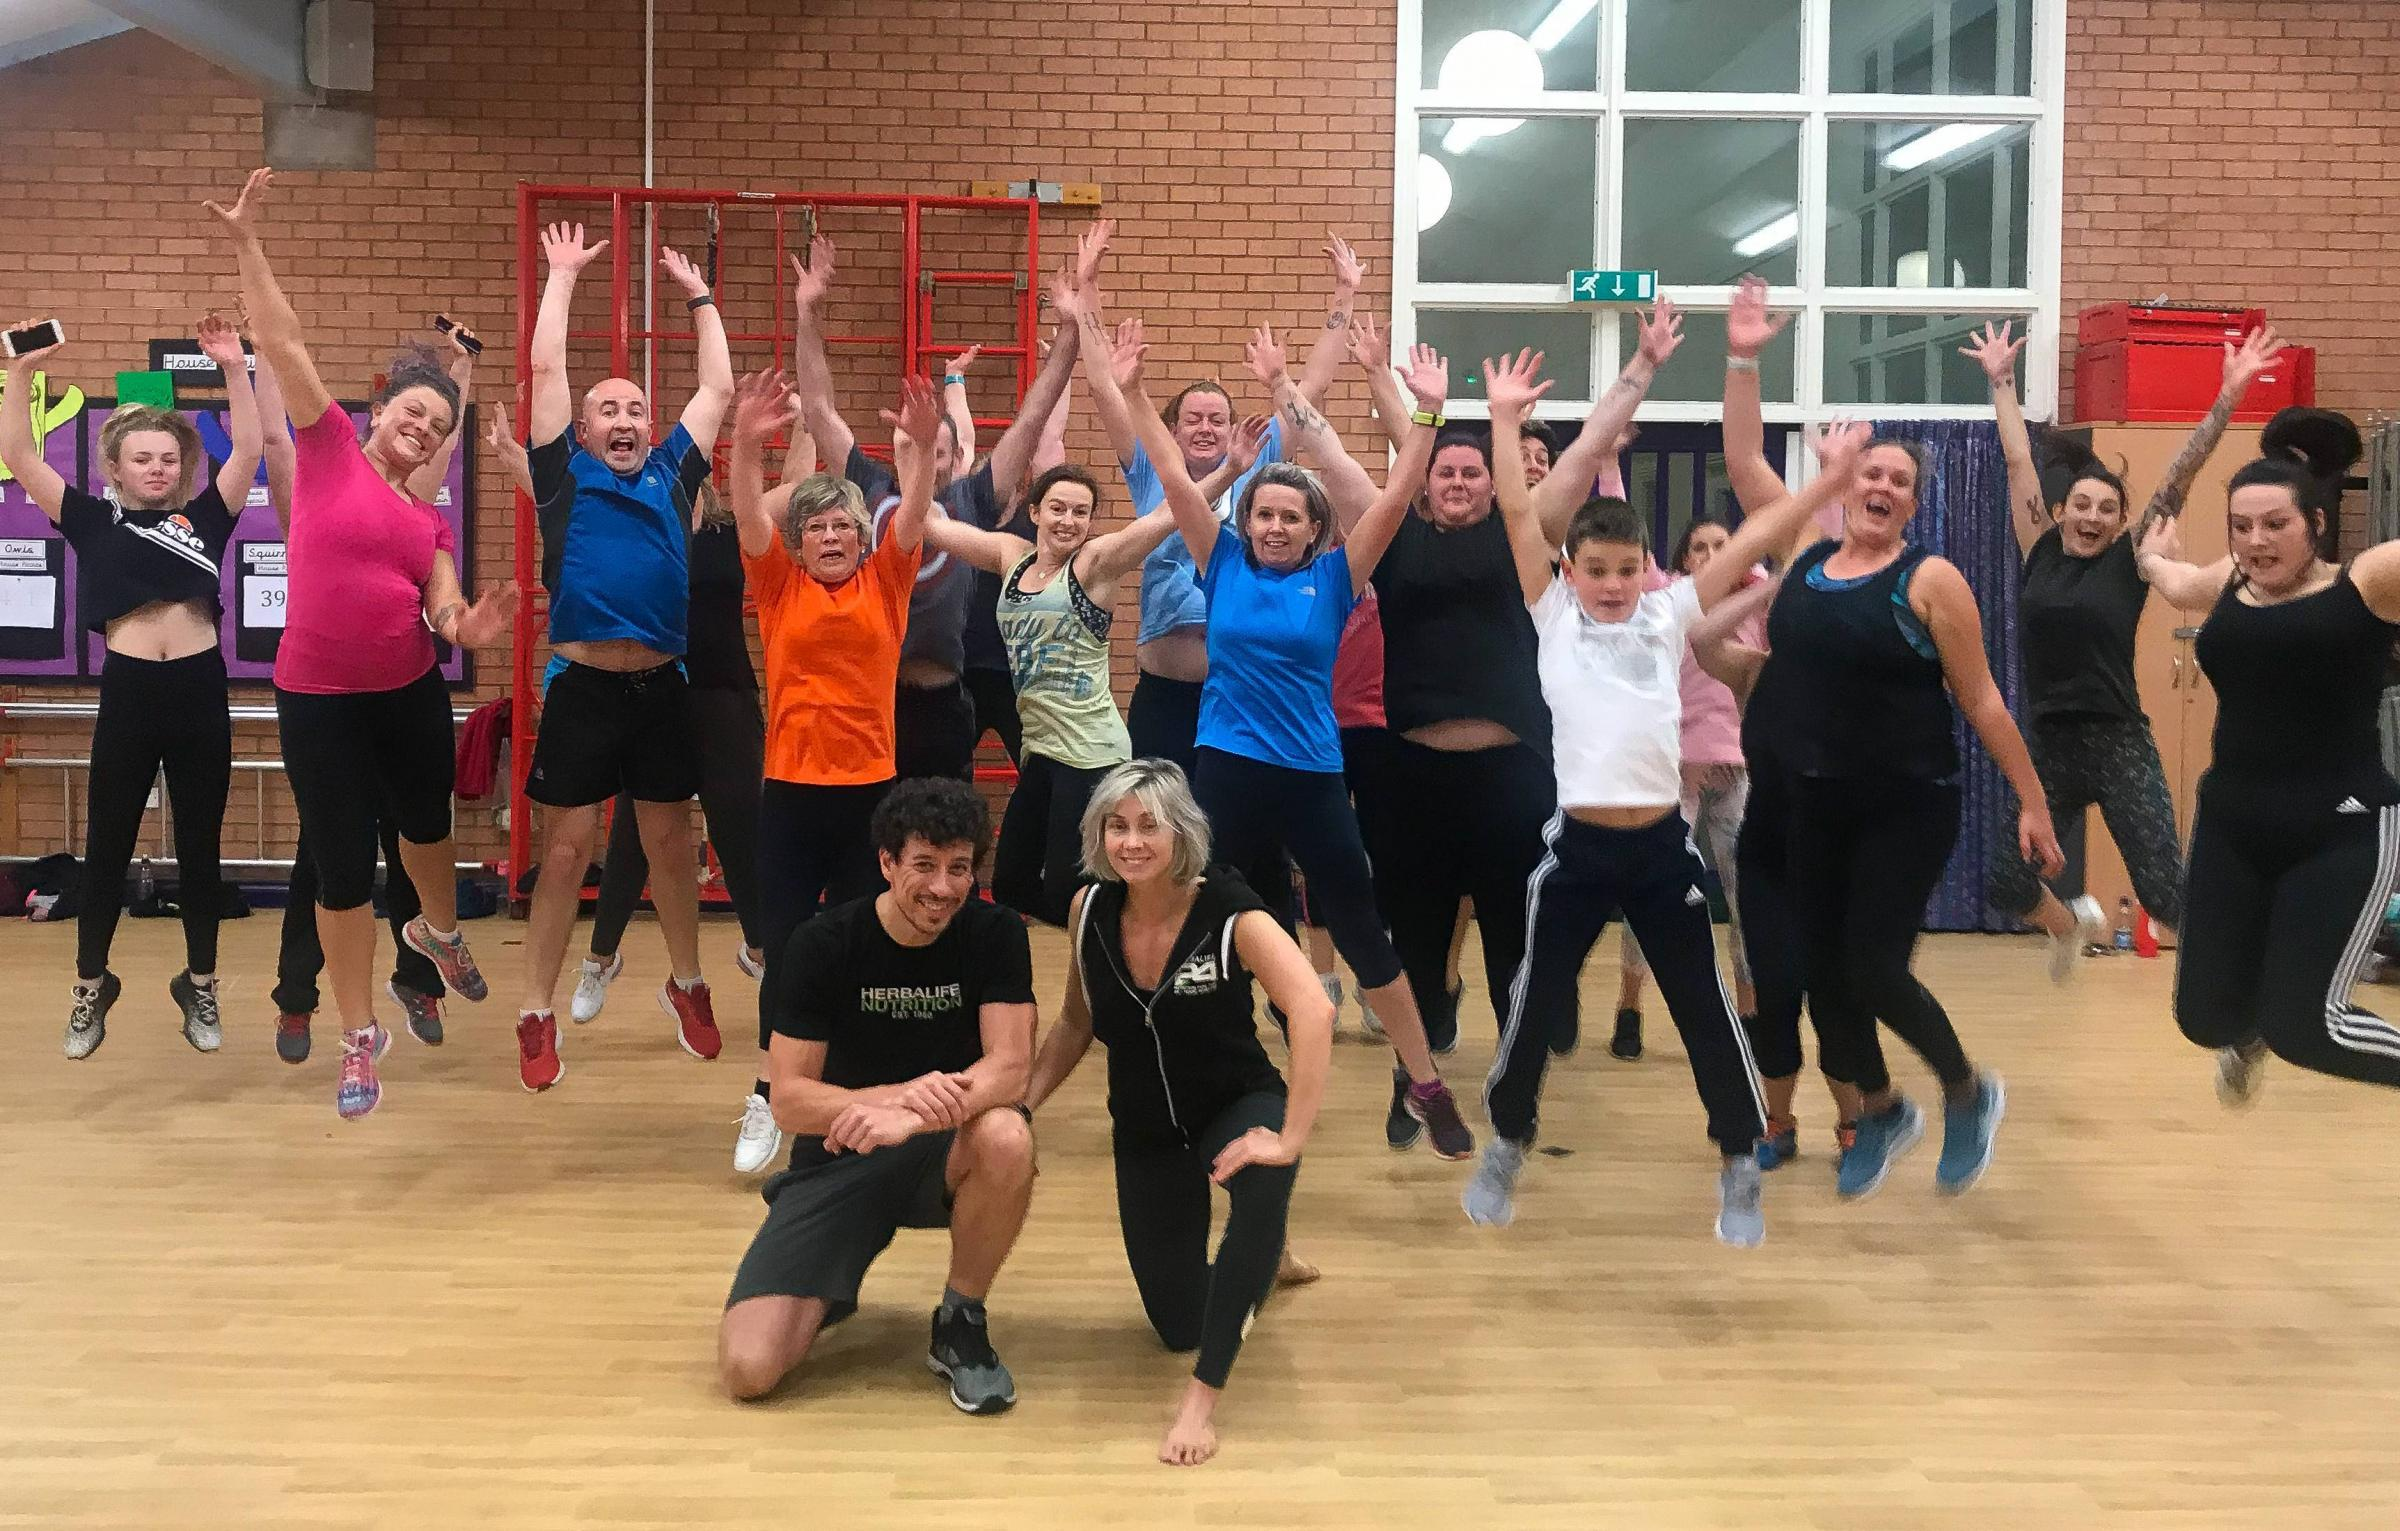 A new Fitclub at Oak View Academy has attracted generations of families to improve their health and fitness